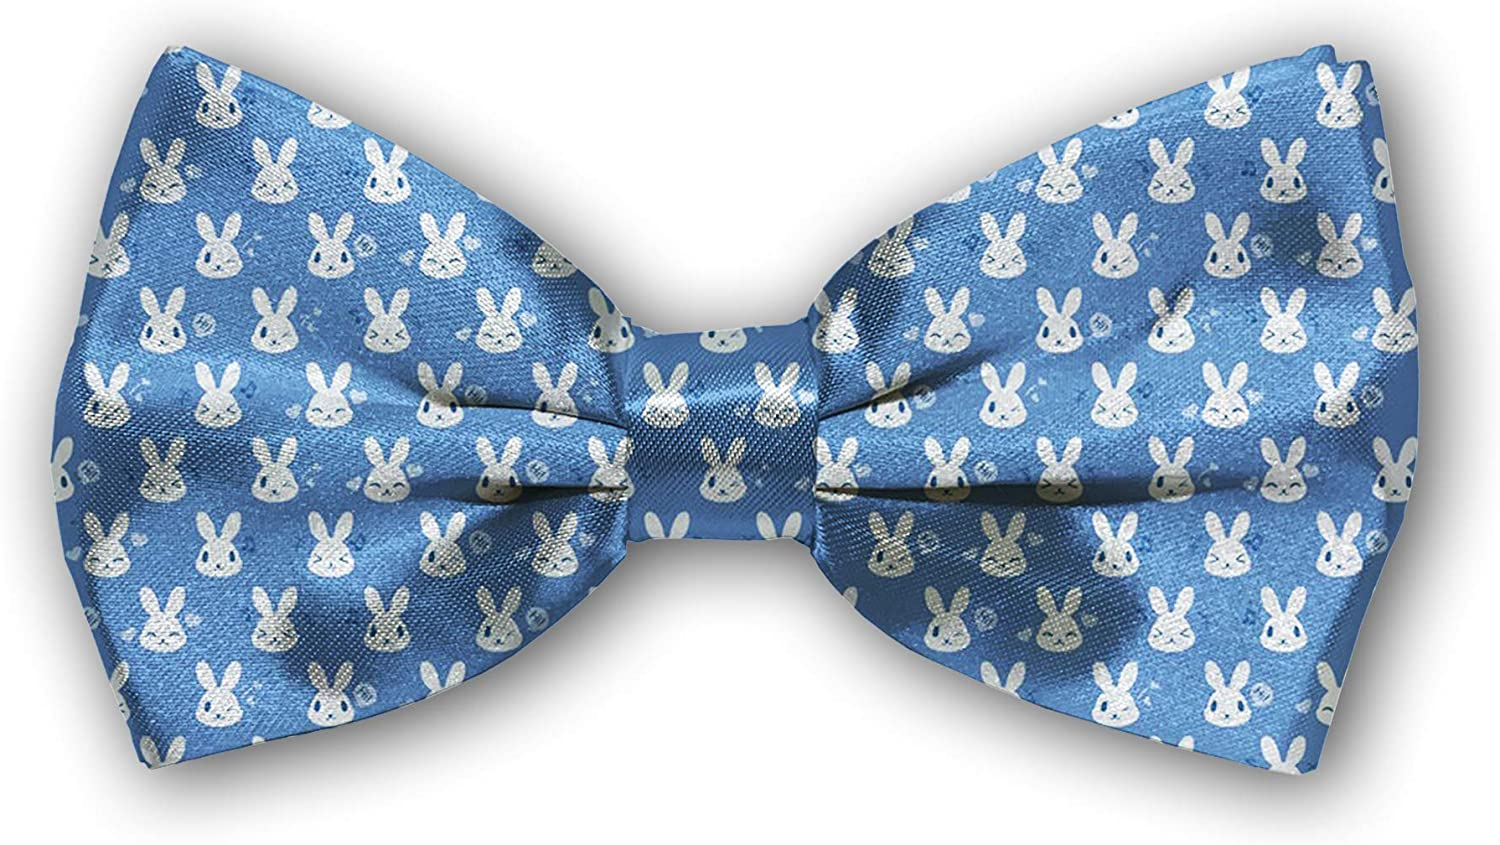 Bow Direct stock discount Tie Tuxedo Butterfly Direct sale of manufacturer Cotton Adjustable Bowtie Boys Mens for